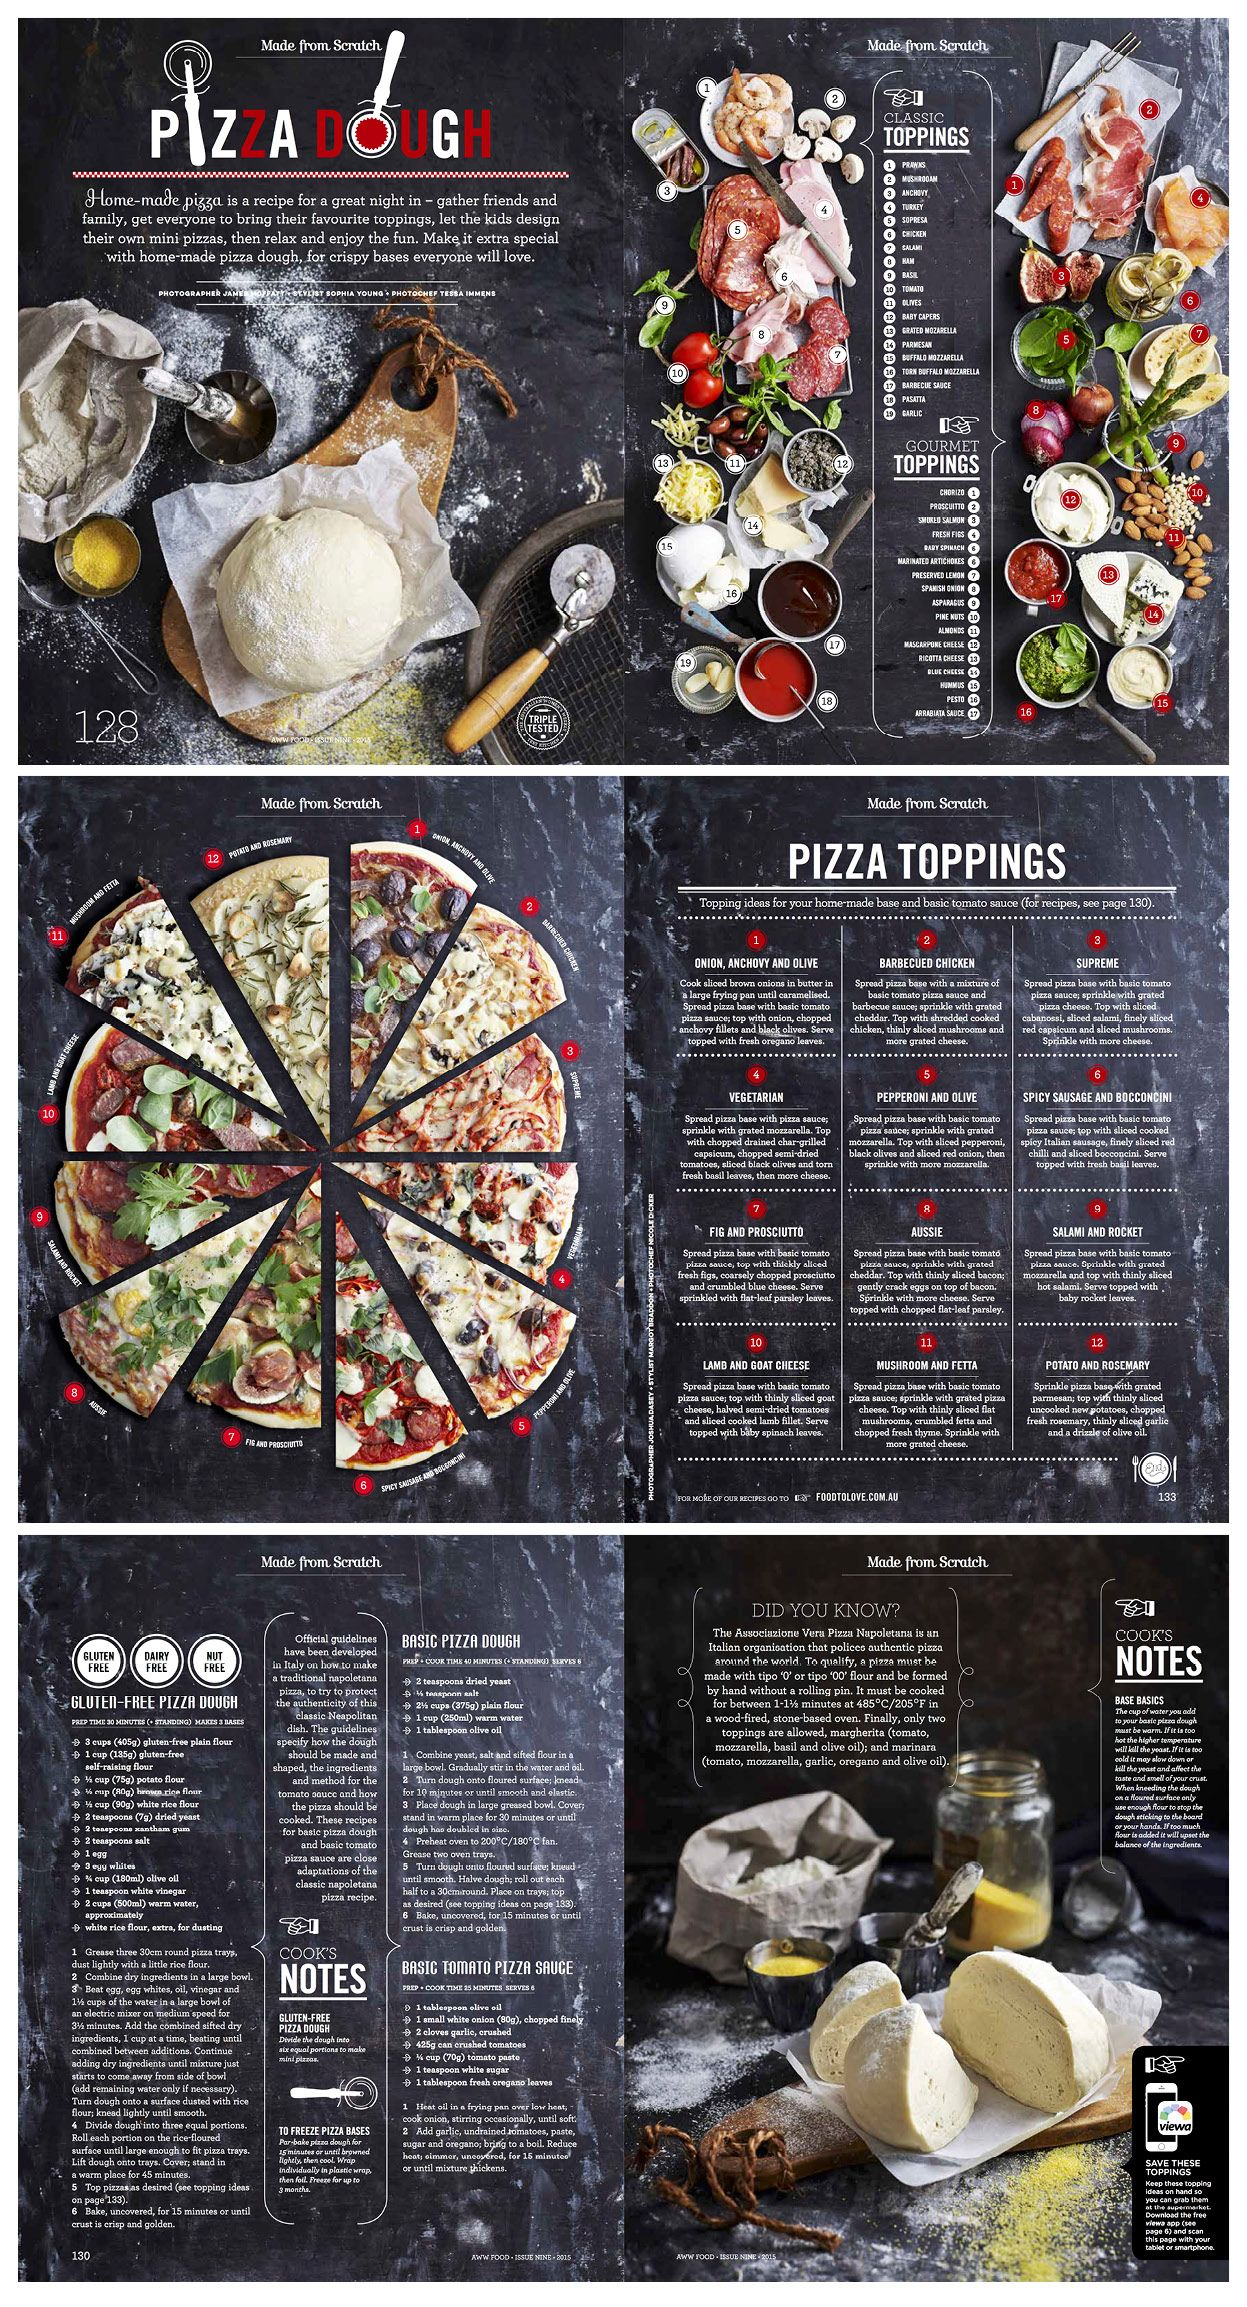 Pizza story from Food Magazine Issue 10 designed by Hieu